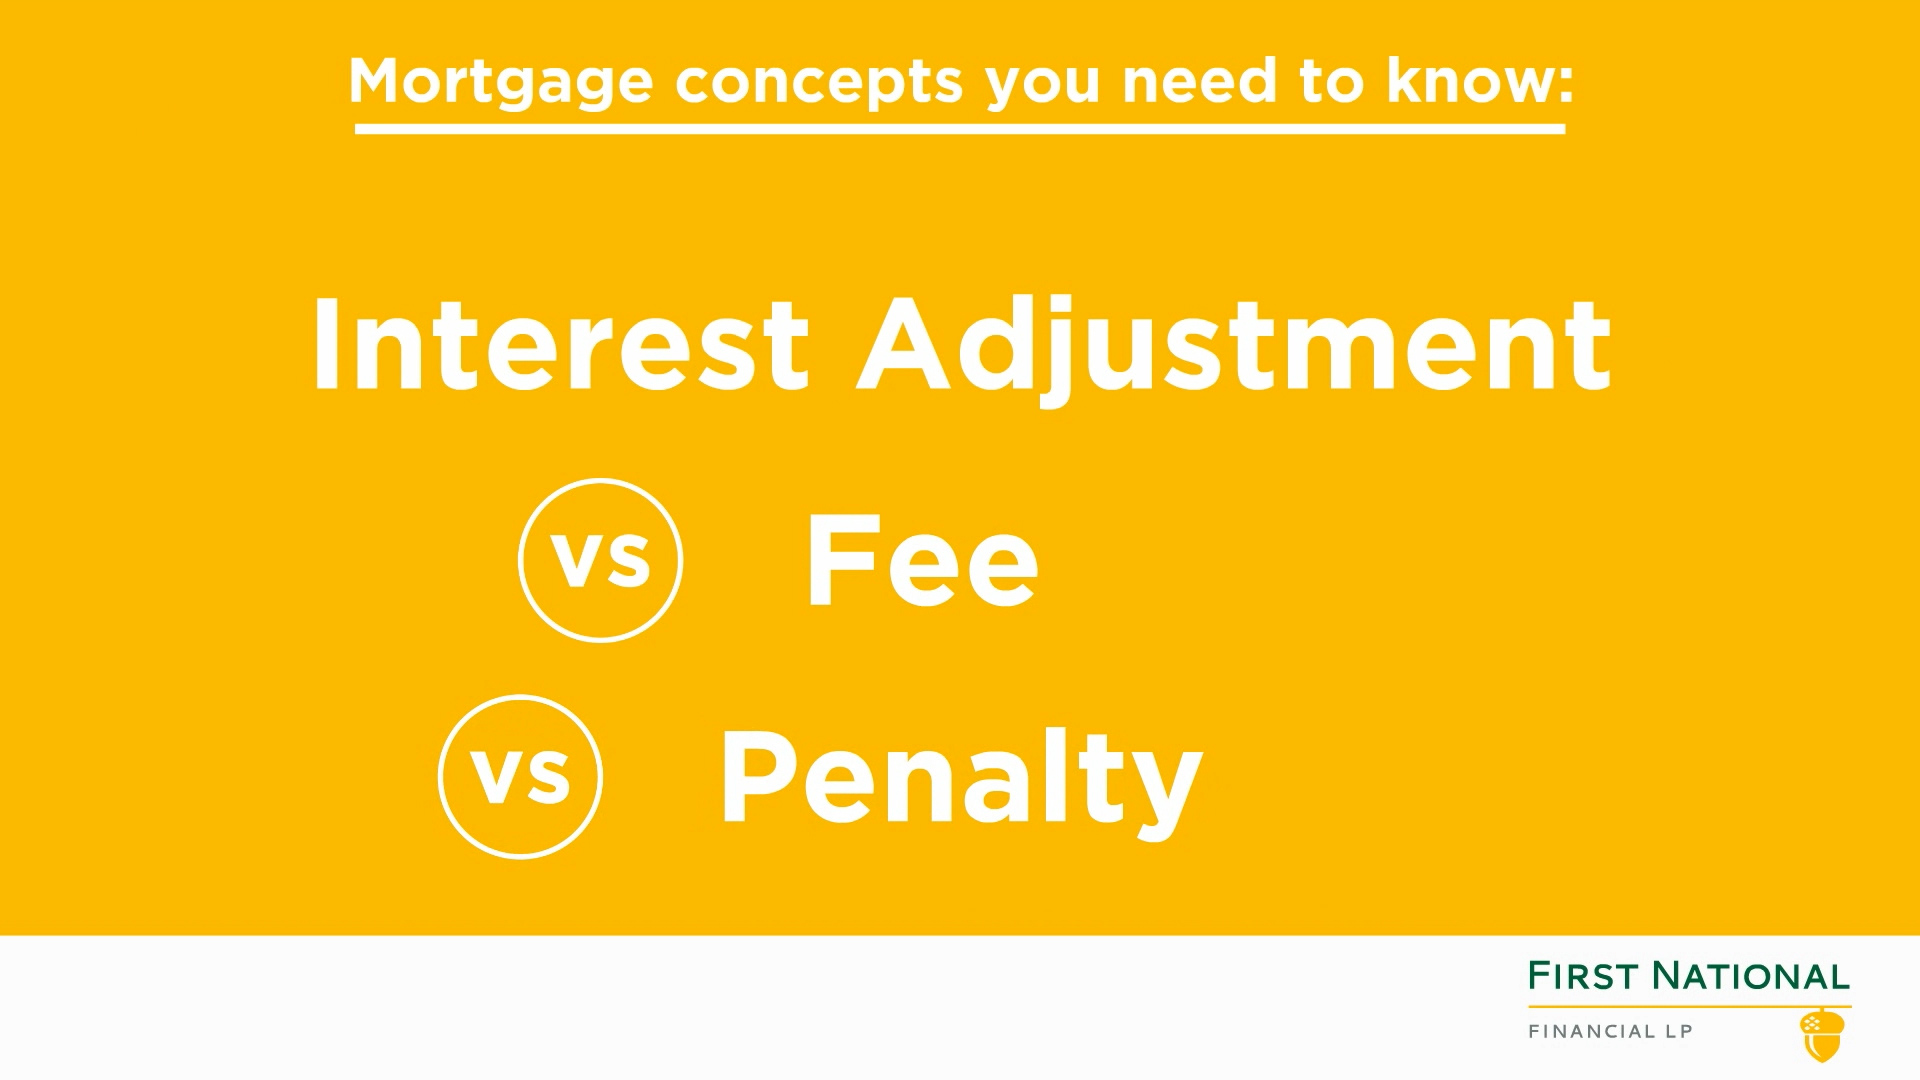 Interest Rate vs Fee vs Penalty